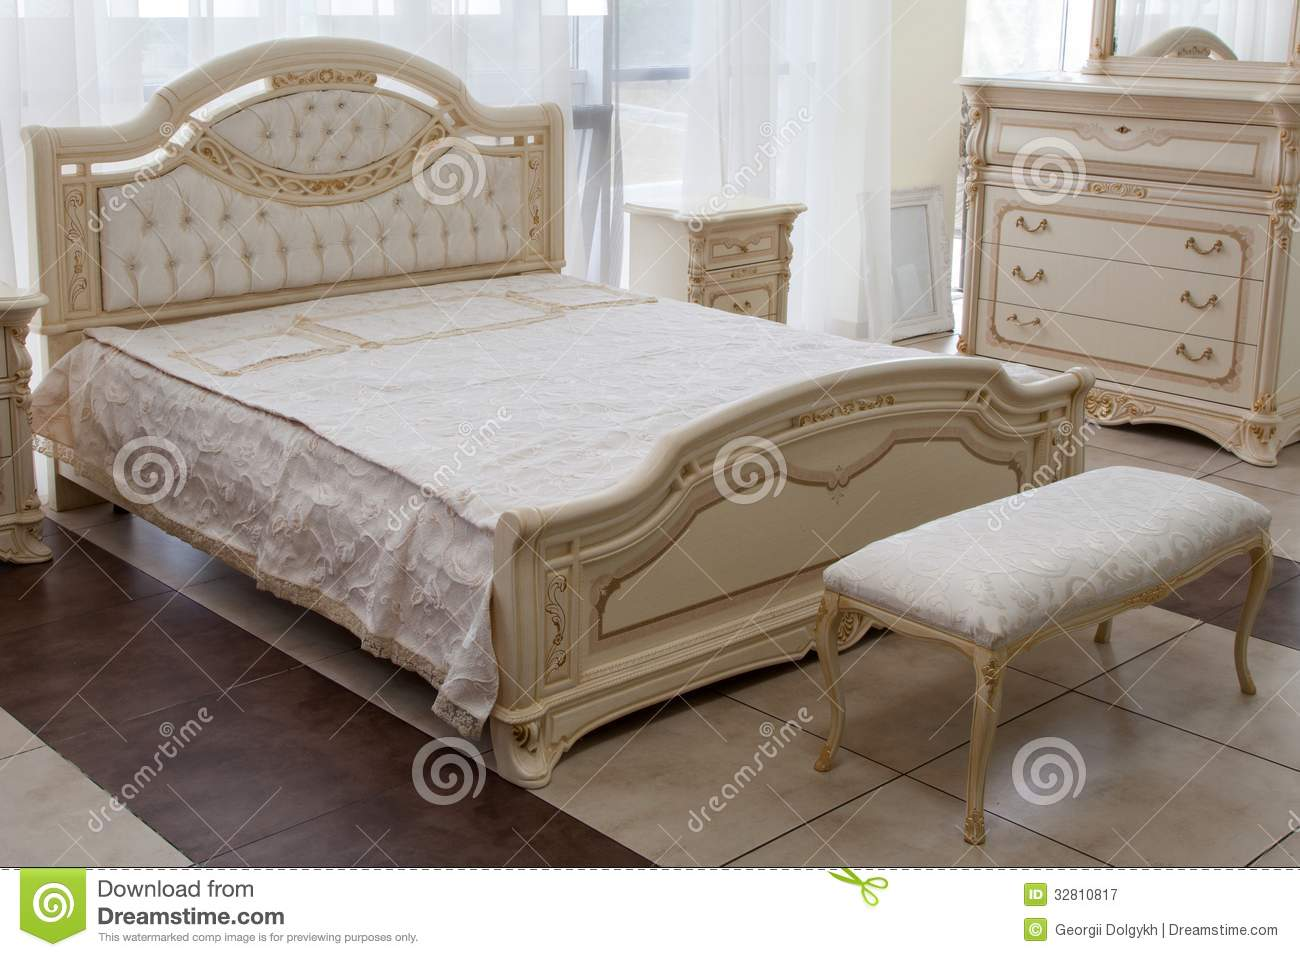 Awesome chambre a coucher royal italy images design for Photo de chambre a coucher